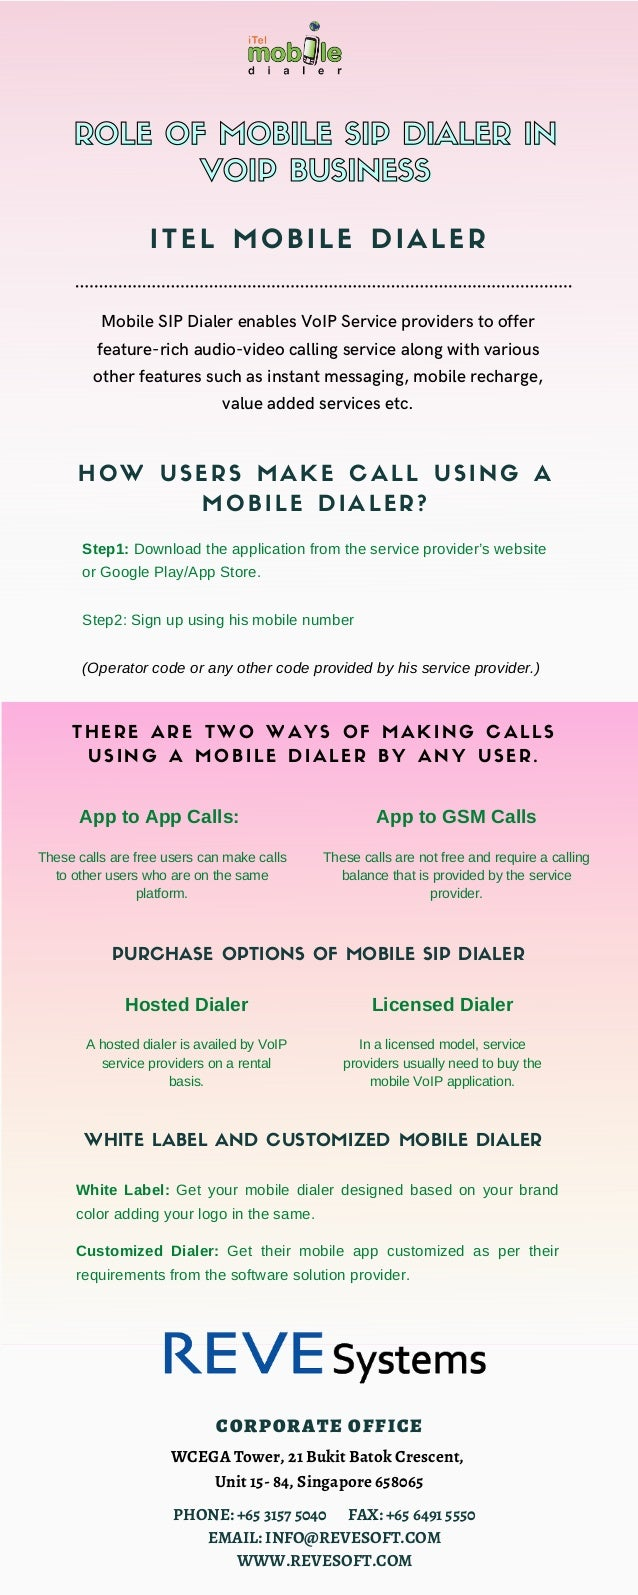 App to App Calls: These calls are free users can make calls to other users who are on the same platform. Mobile SIP Dialer...